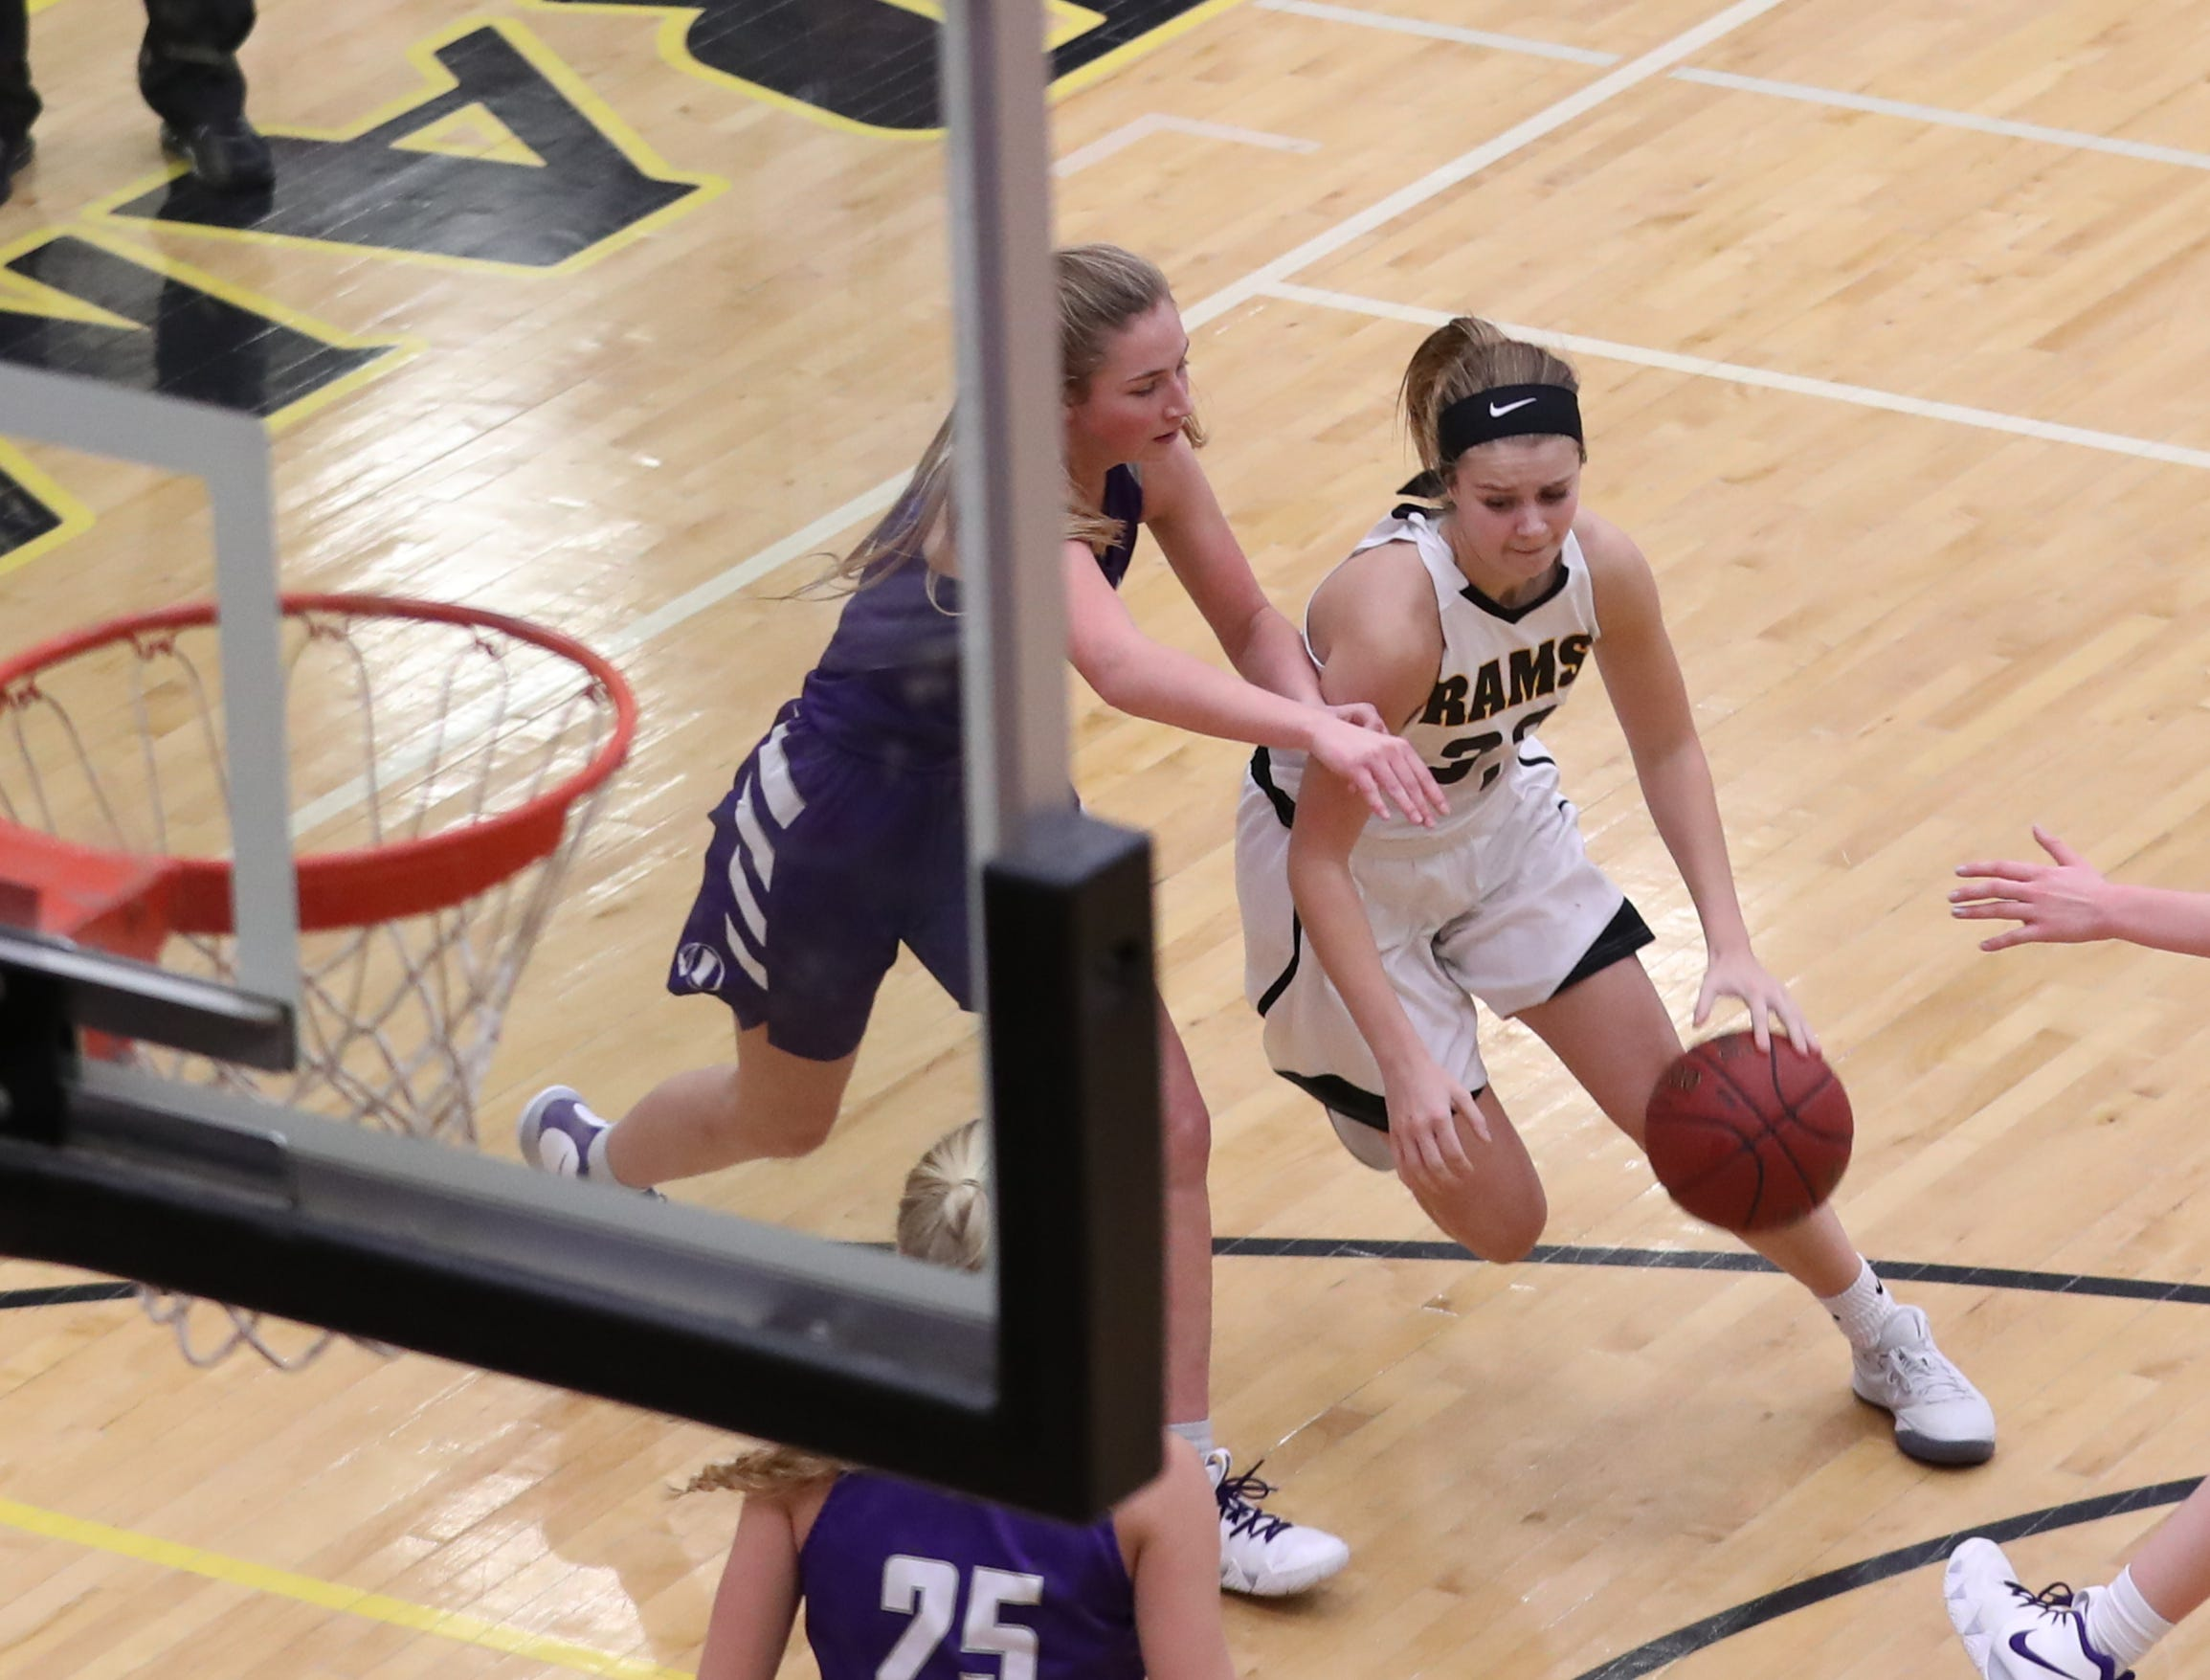 Nov 20, 2018; Pleasant Hill, IA, USA; Southeast Polk Rams Maggie McGraw (32) drives the ball to the basket against the Indianola Indians at Southeast Polk Gymnasium.